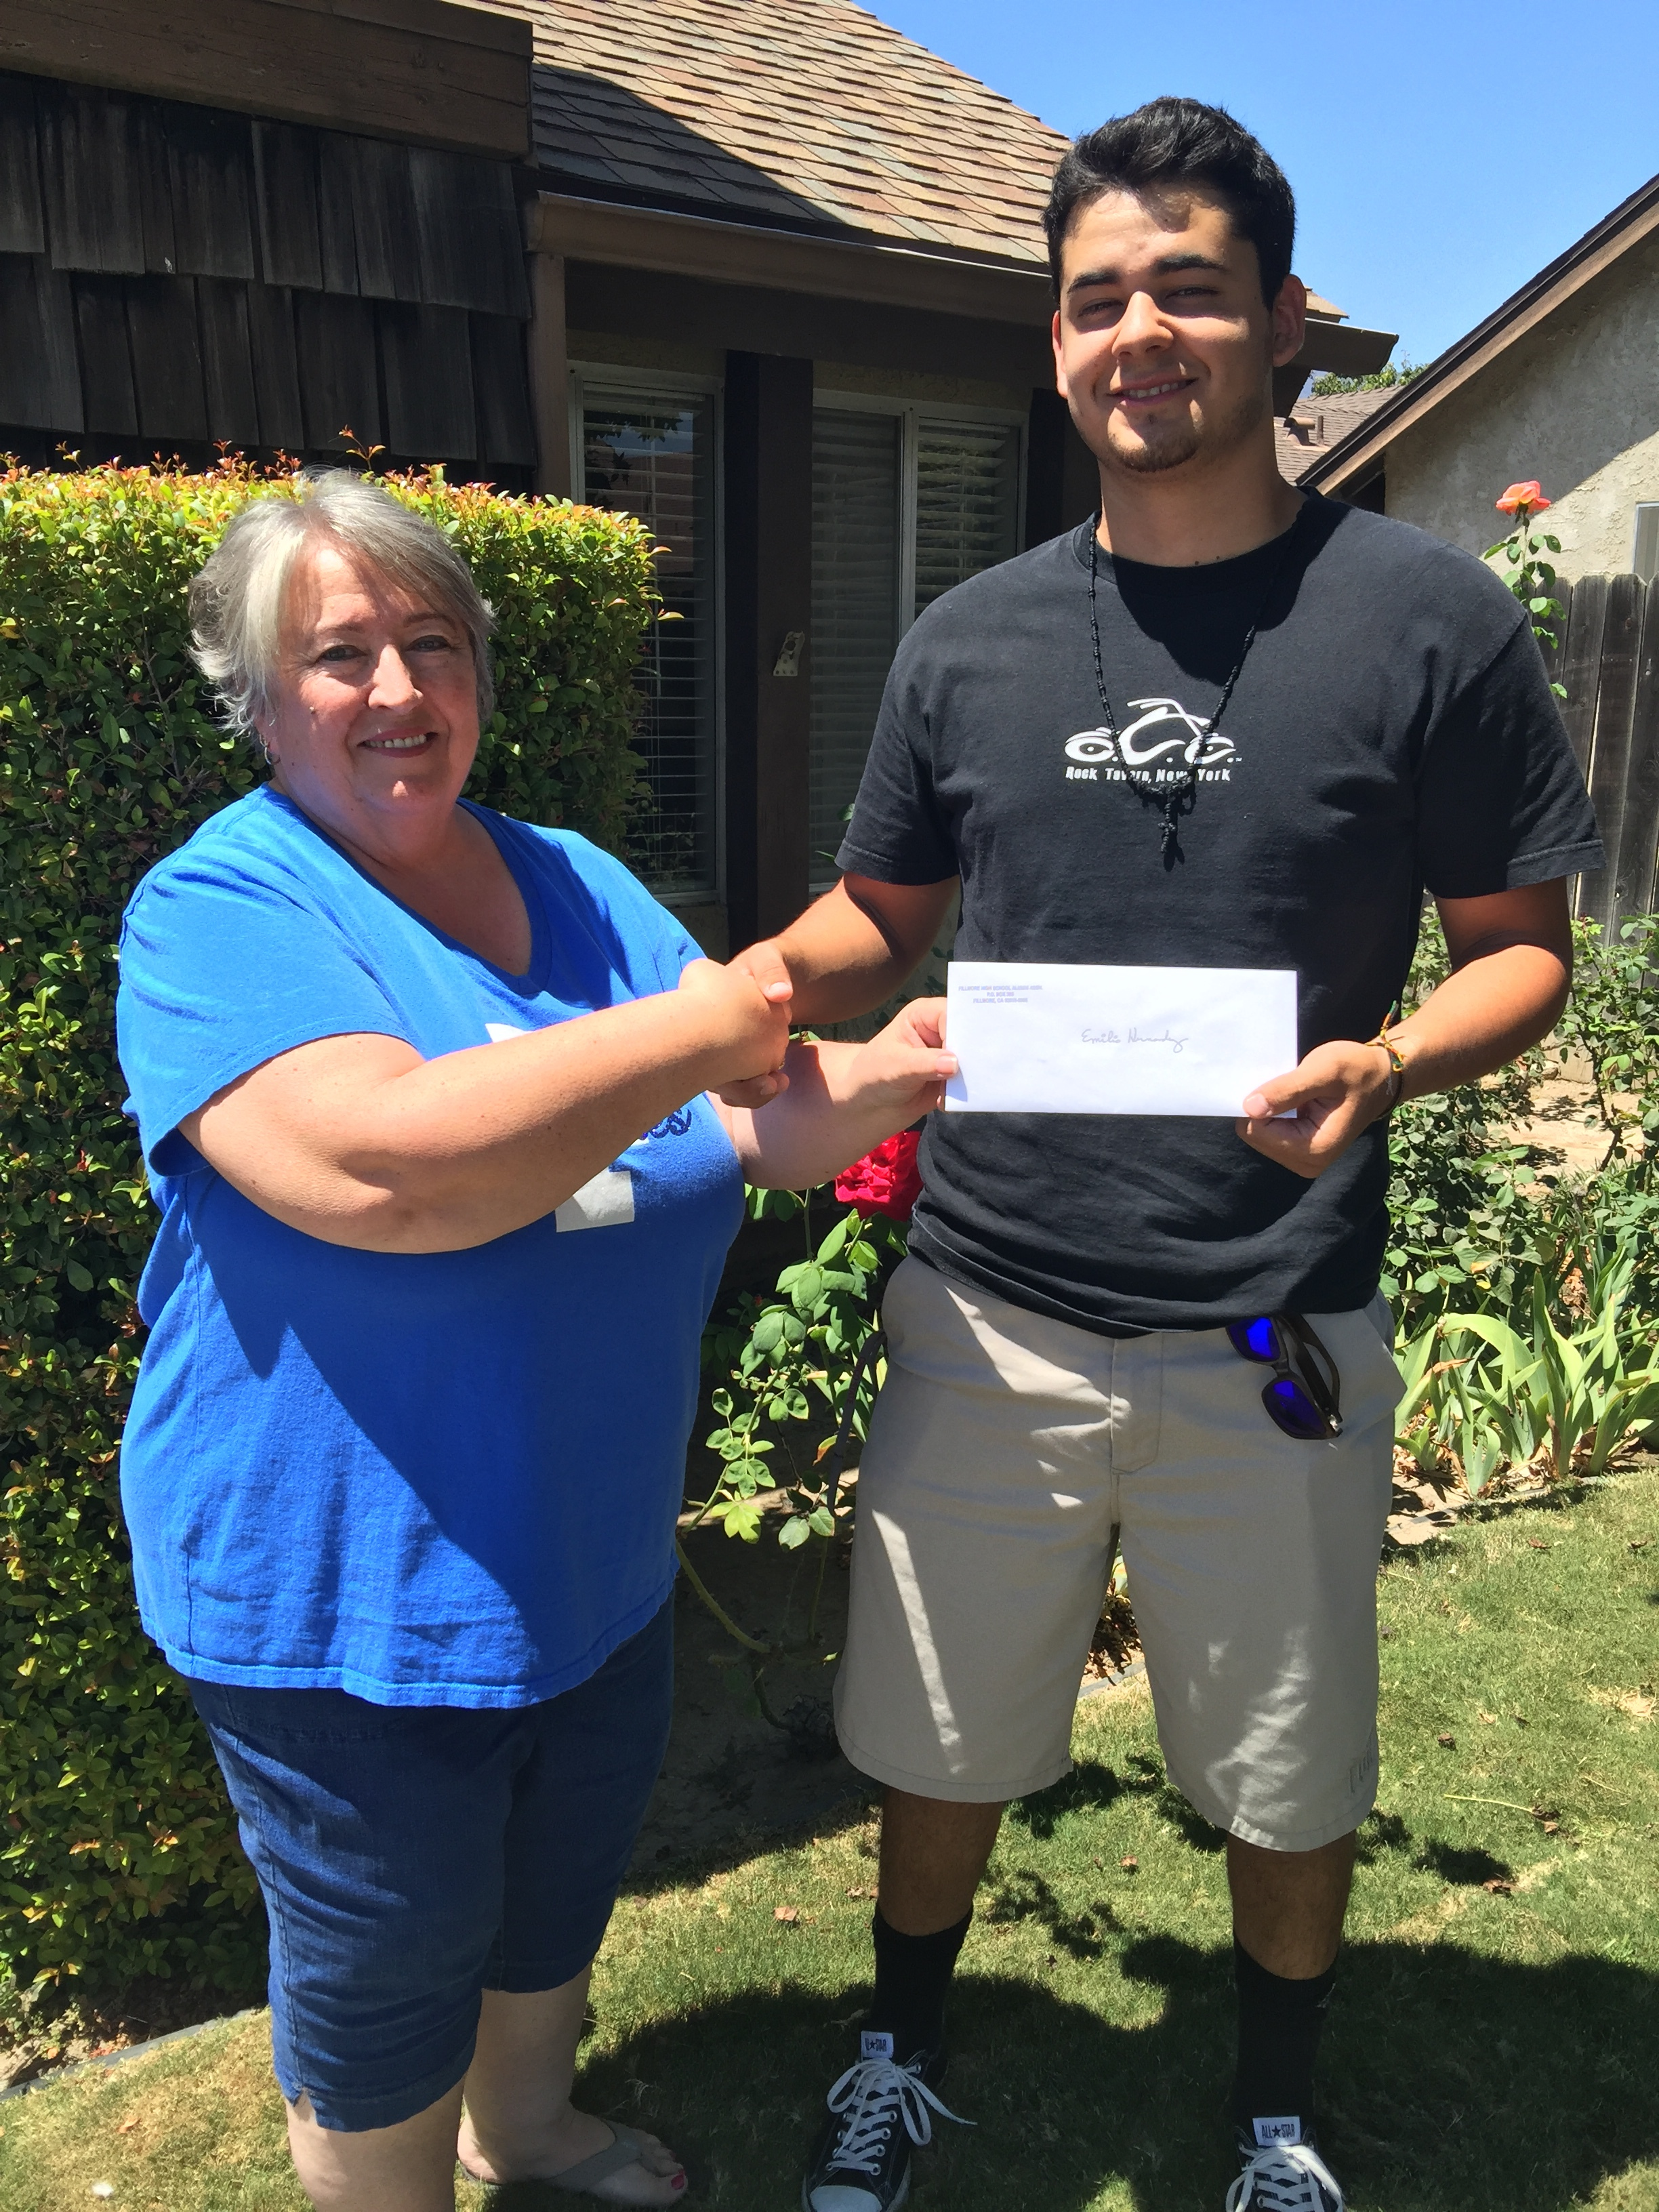 """Emilio Hernandez, Class of 2015 receives his continuing education grant from Vice President of the Fillmore High Alumni Association, Corinna """"Chandler"""" Mozley. '71. Emilio is attending Chico State University and majoring in Economics. He is on schedule to Graduate in 2019. Congrats Emilio!"""